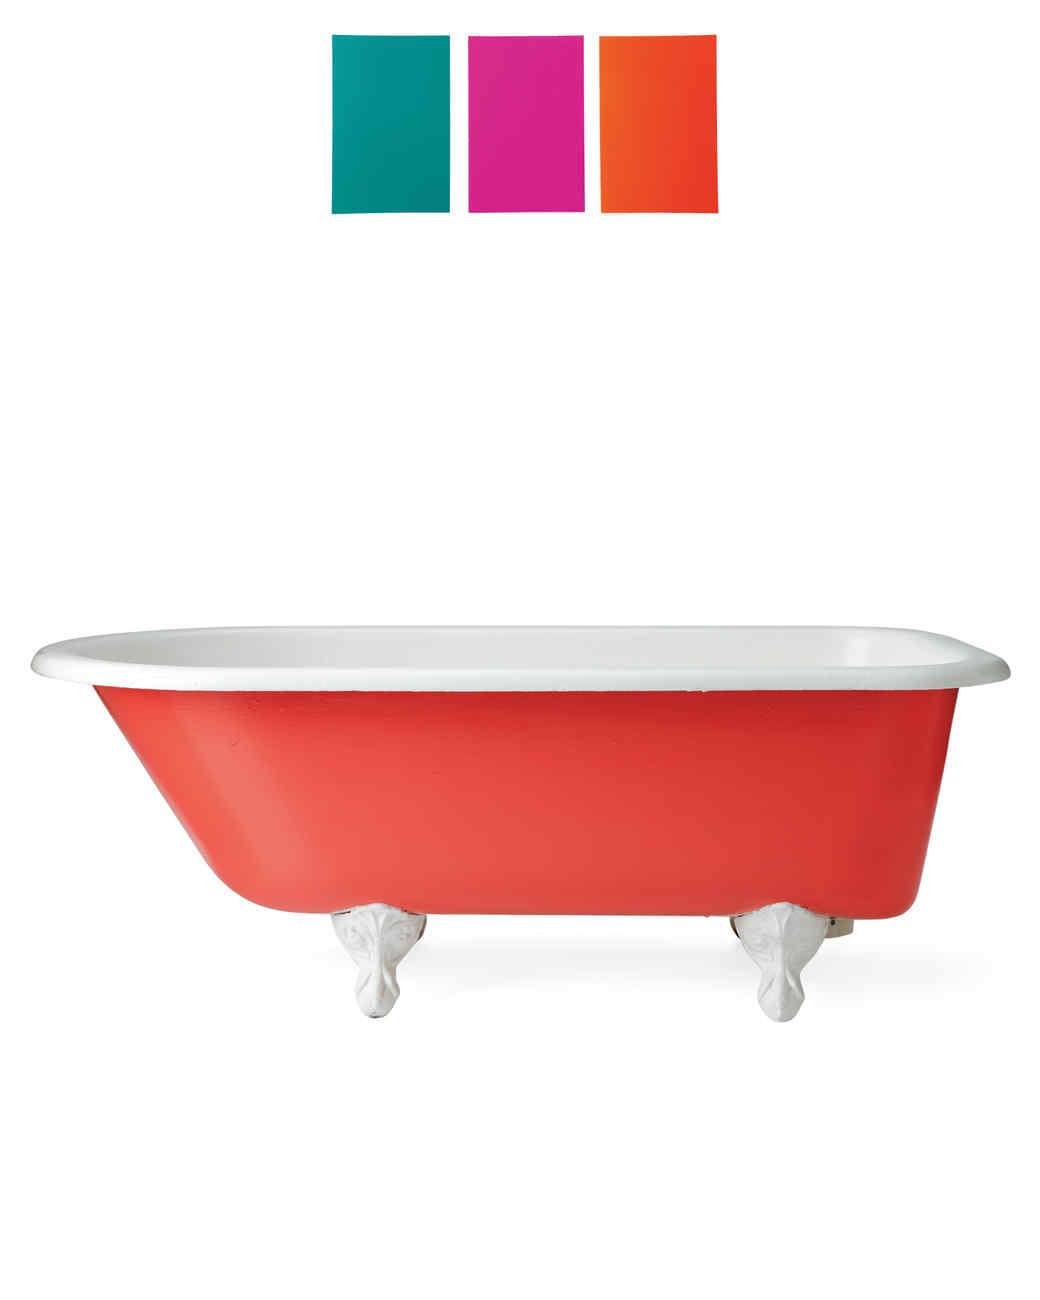 colorblocked-bathtub-mld108526.jpg